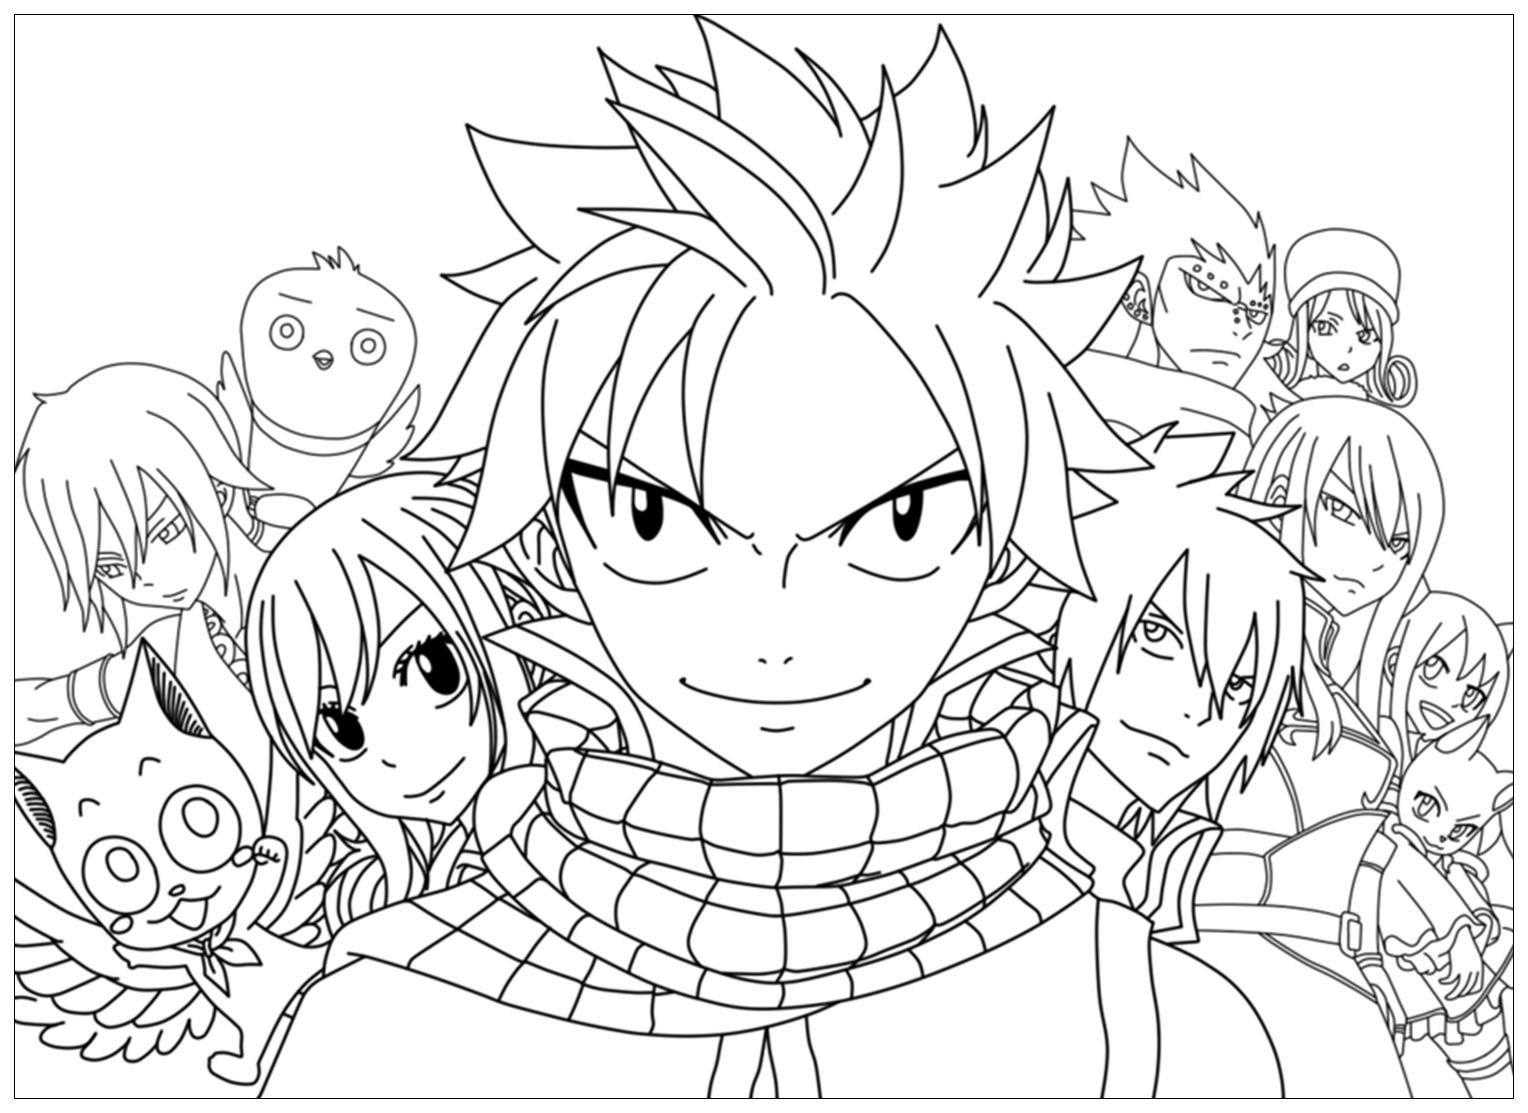 Fairy tail to print for free - Fairy tail Kids Coloring Pages